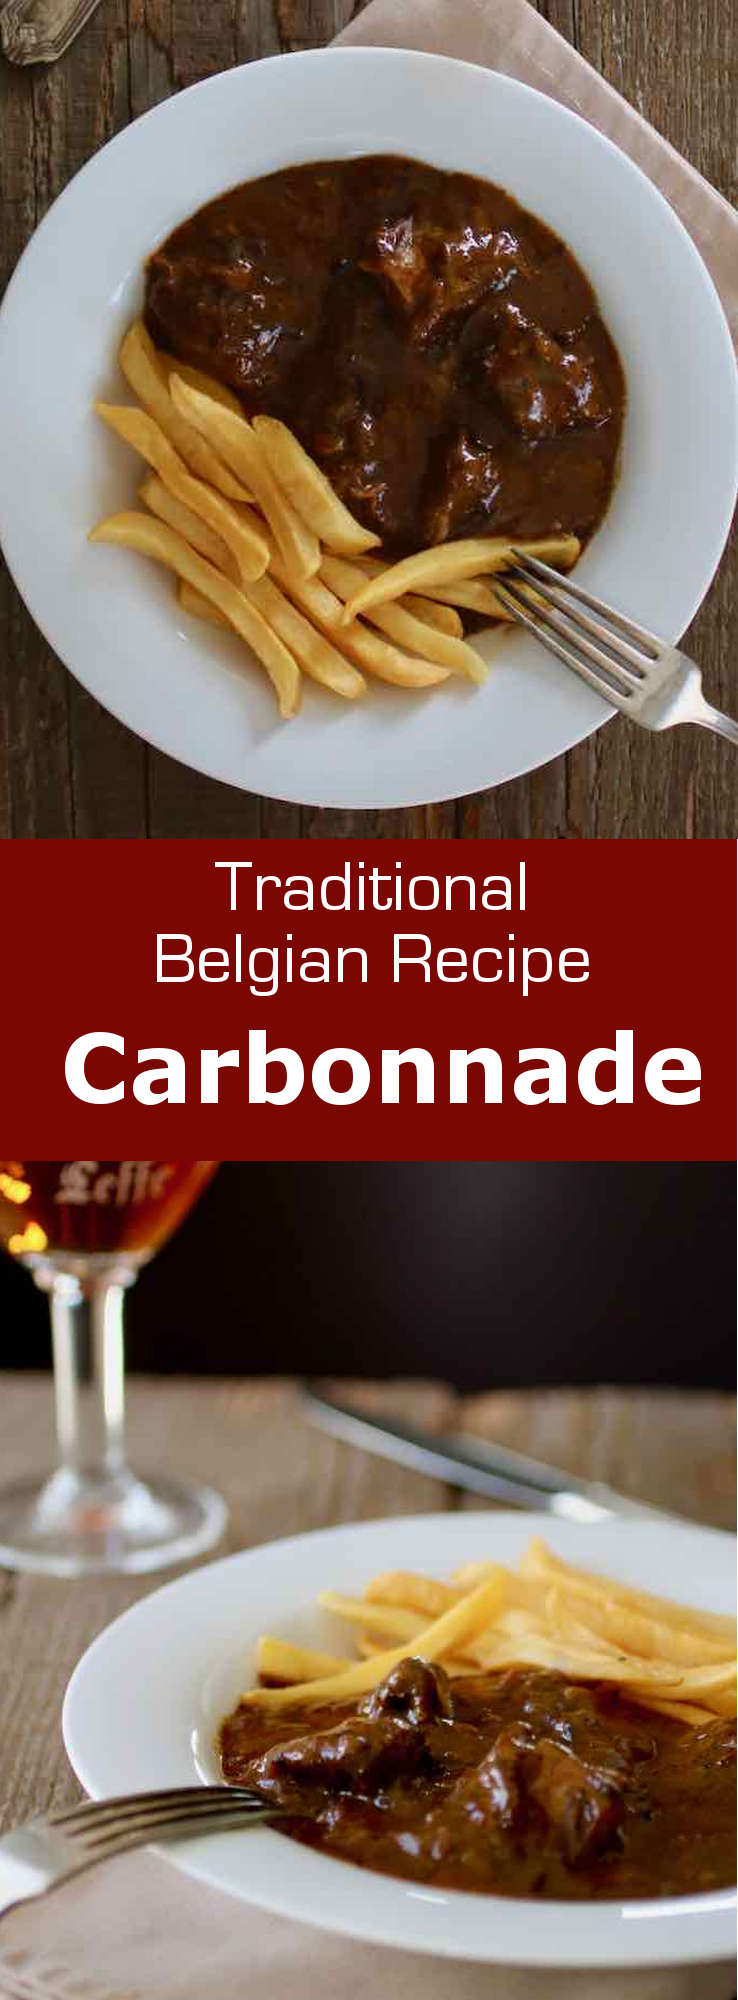 Carbonnade (or stoofvlees in Flemish) is a traditional Belgian beef stew with dark beer and onions.